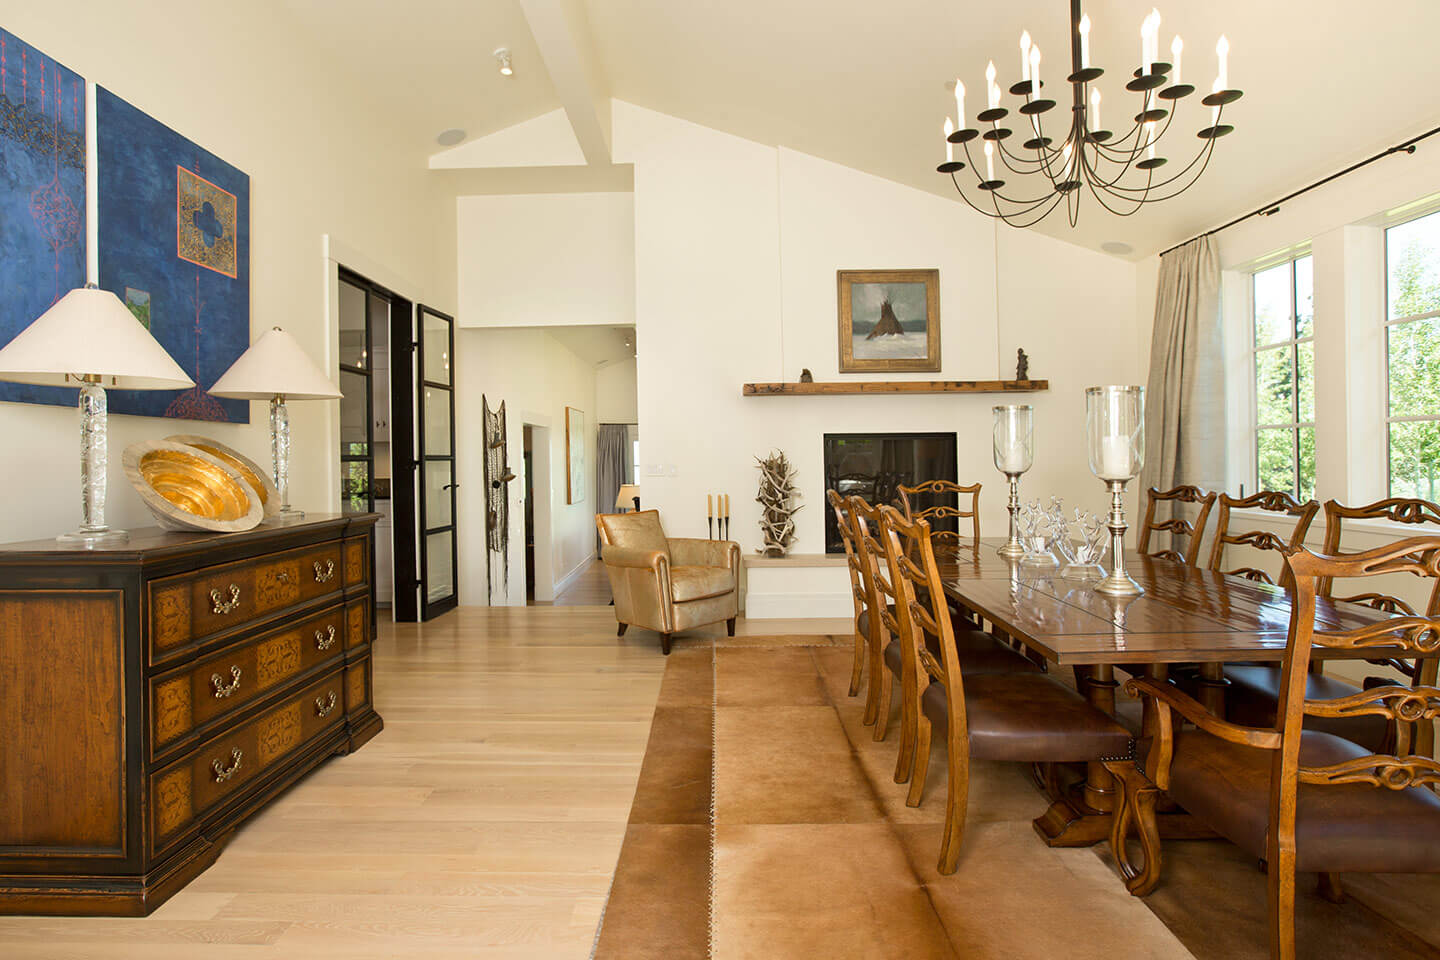 Dining room with antique furniture and leather rug